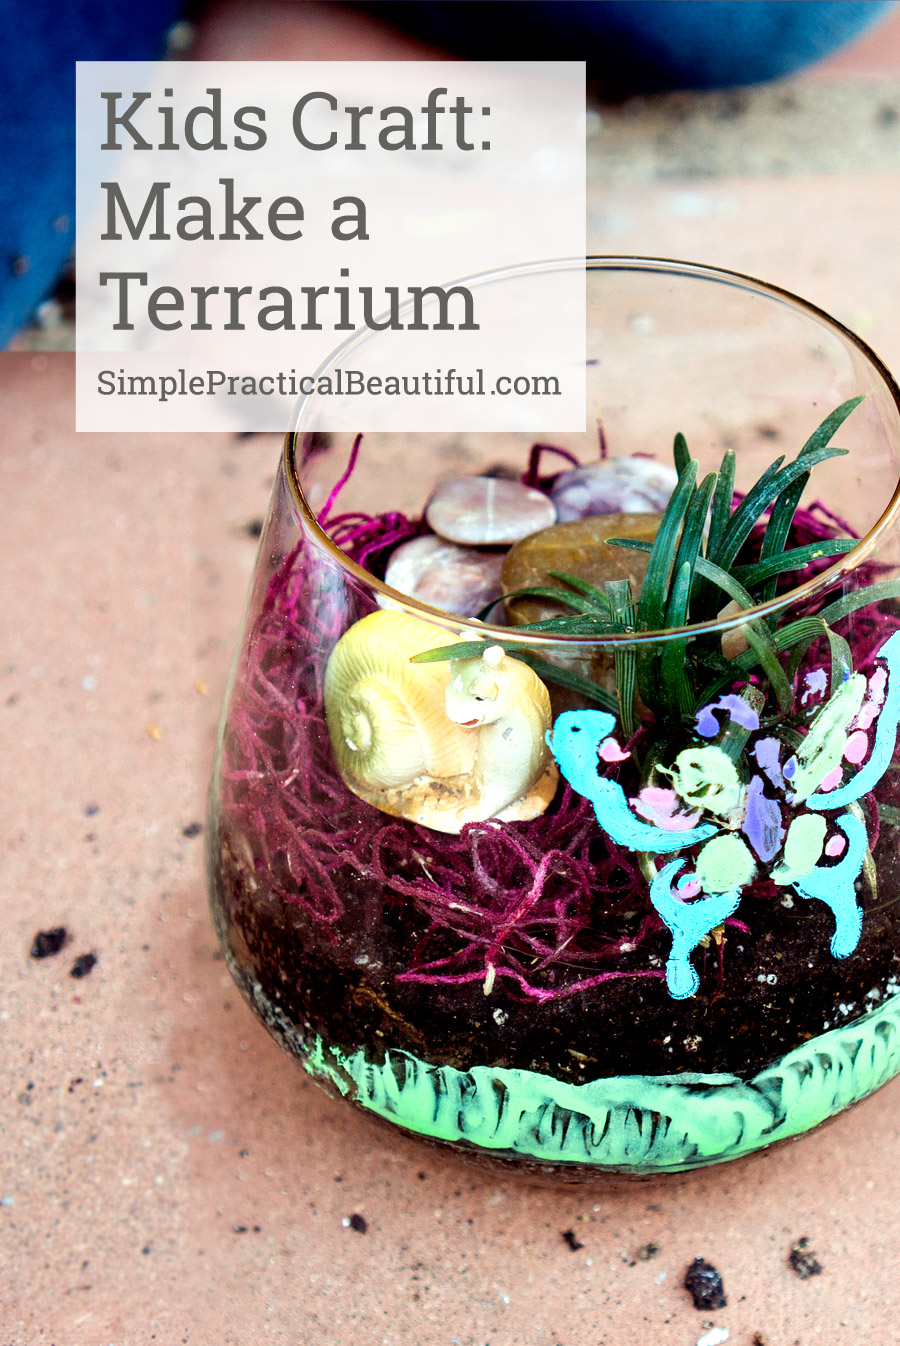 Making a terrarium is the perfect craft for kids to make.